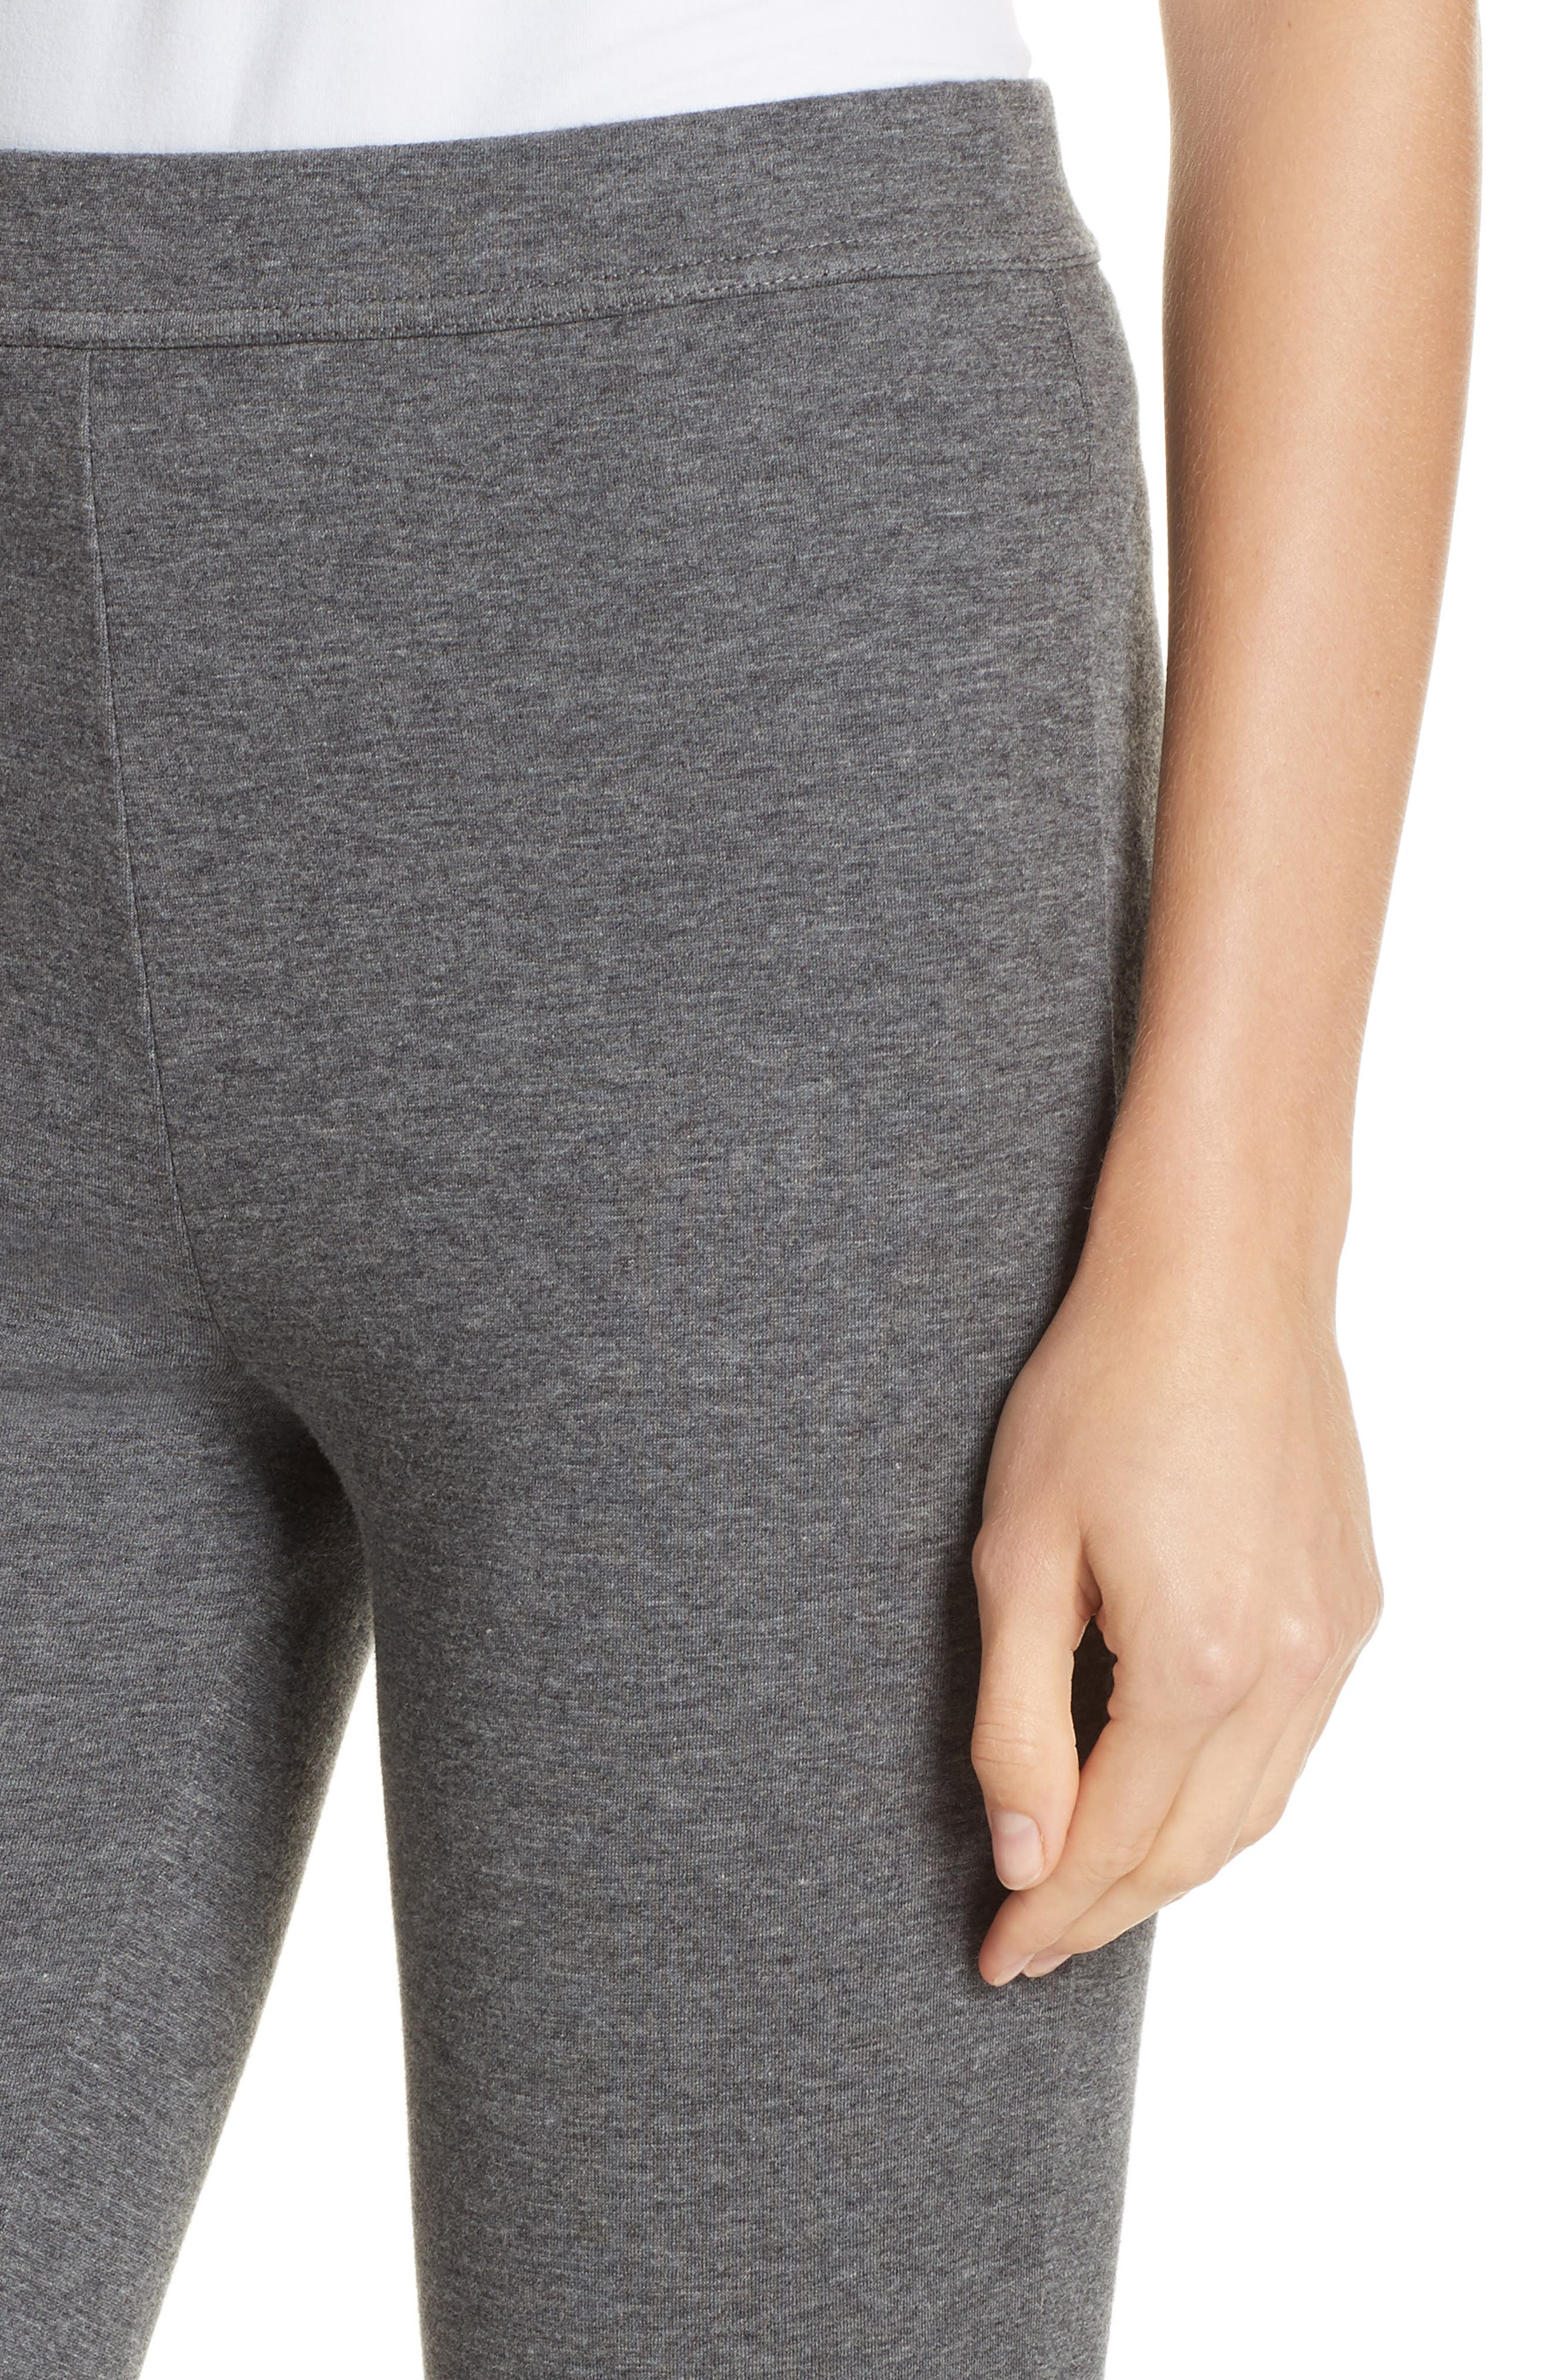 Heathered Cotton Blend Leggings,                             Alternate thumbnail 4, color,                             HEATHER CHARCOAL